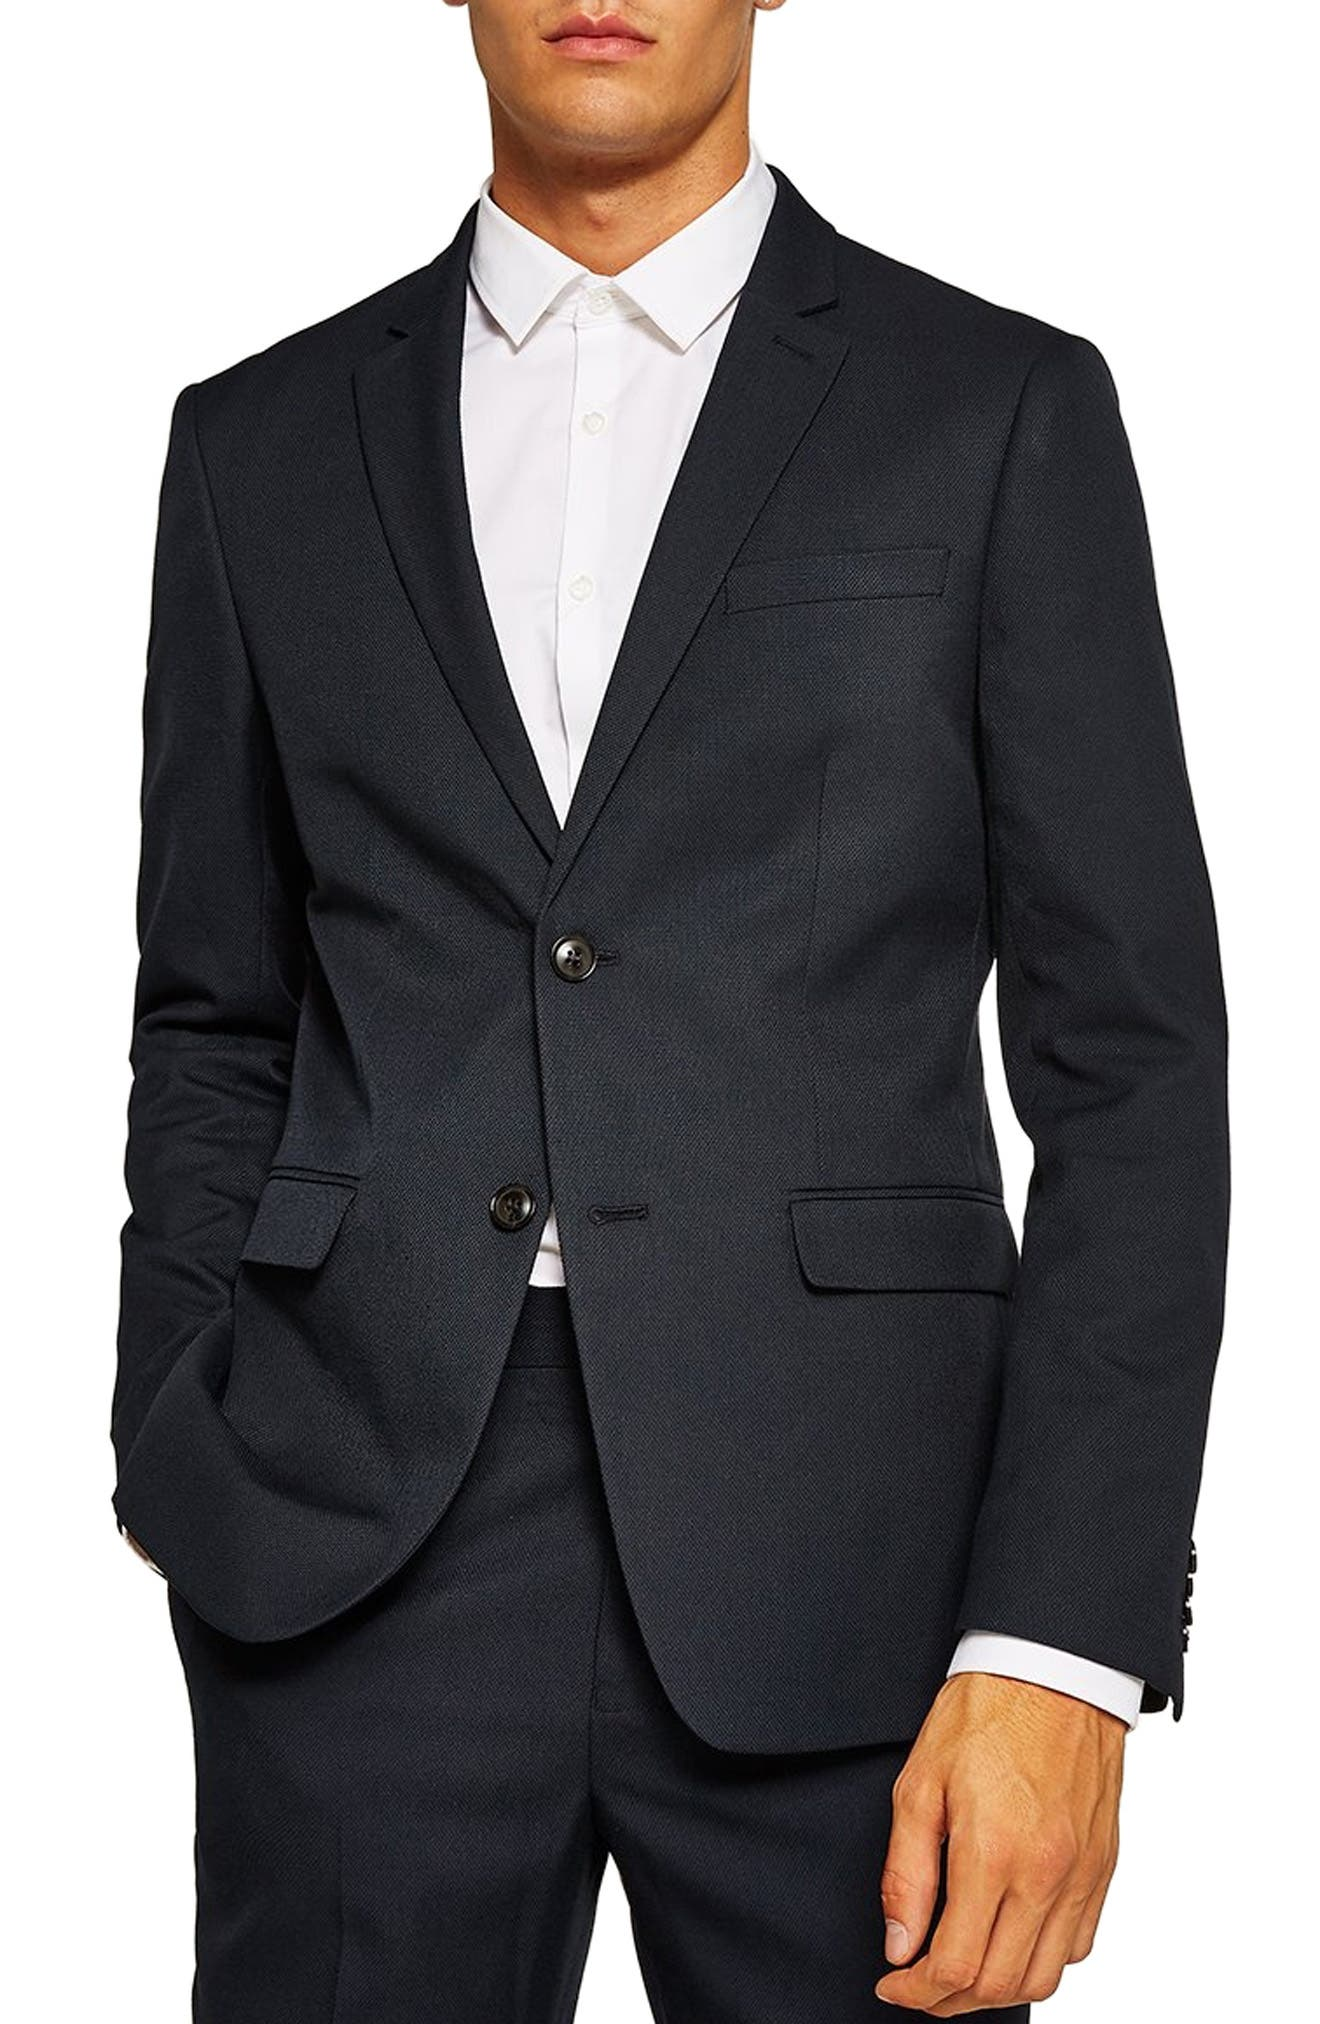 Skinny Fit Textured Suit Jacket,                             Main thumbnail 1, color,                             DARK BLUE